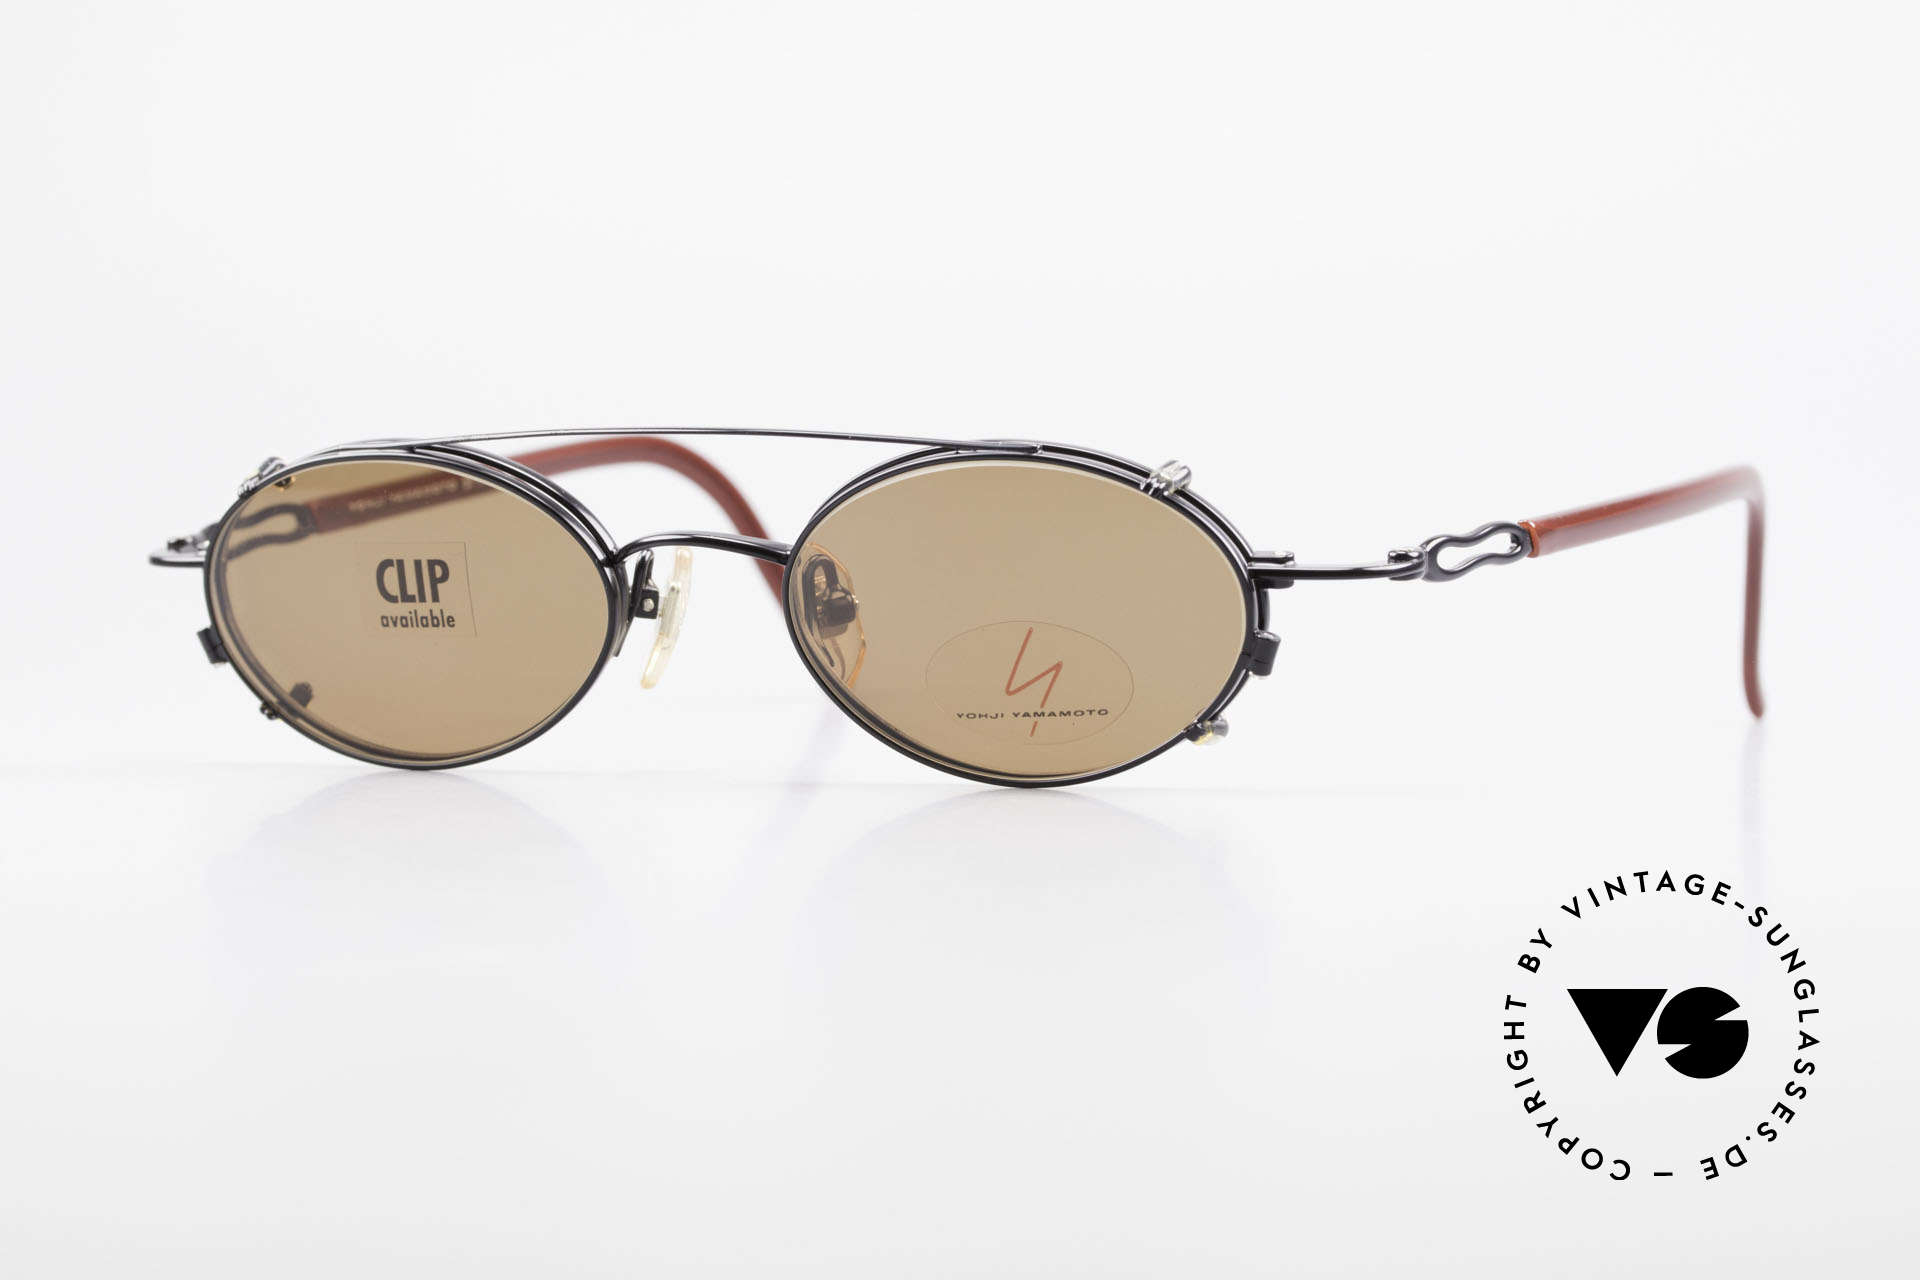 Yohji Yamamoto 51-8201 Oval Vintage Glasses Clip On, vintage eyeglasses by Yohji Yamamoto with Clip-On, Made for Men and Women